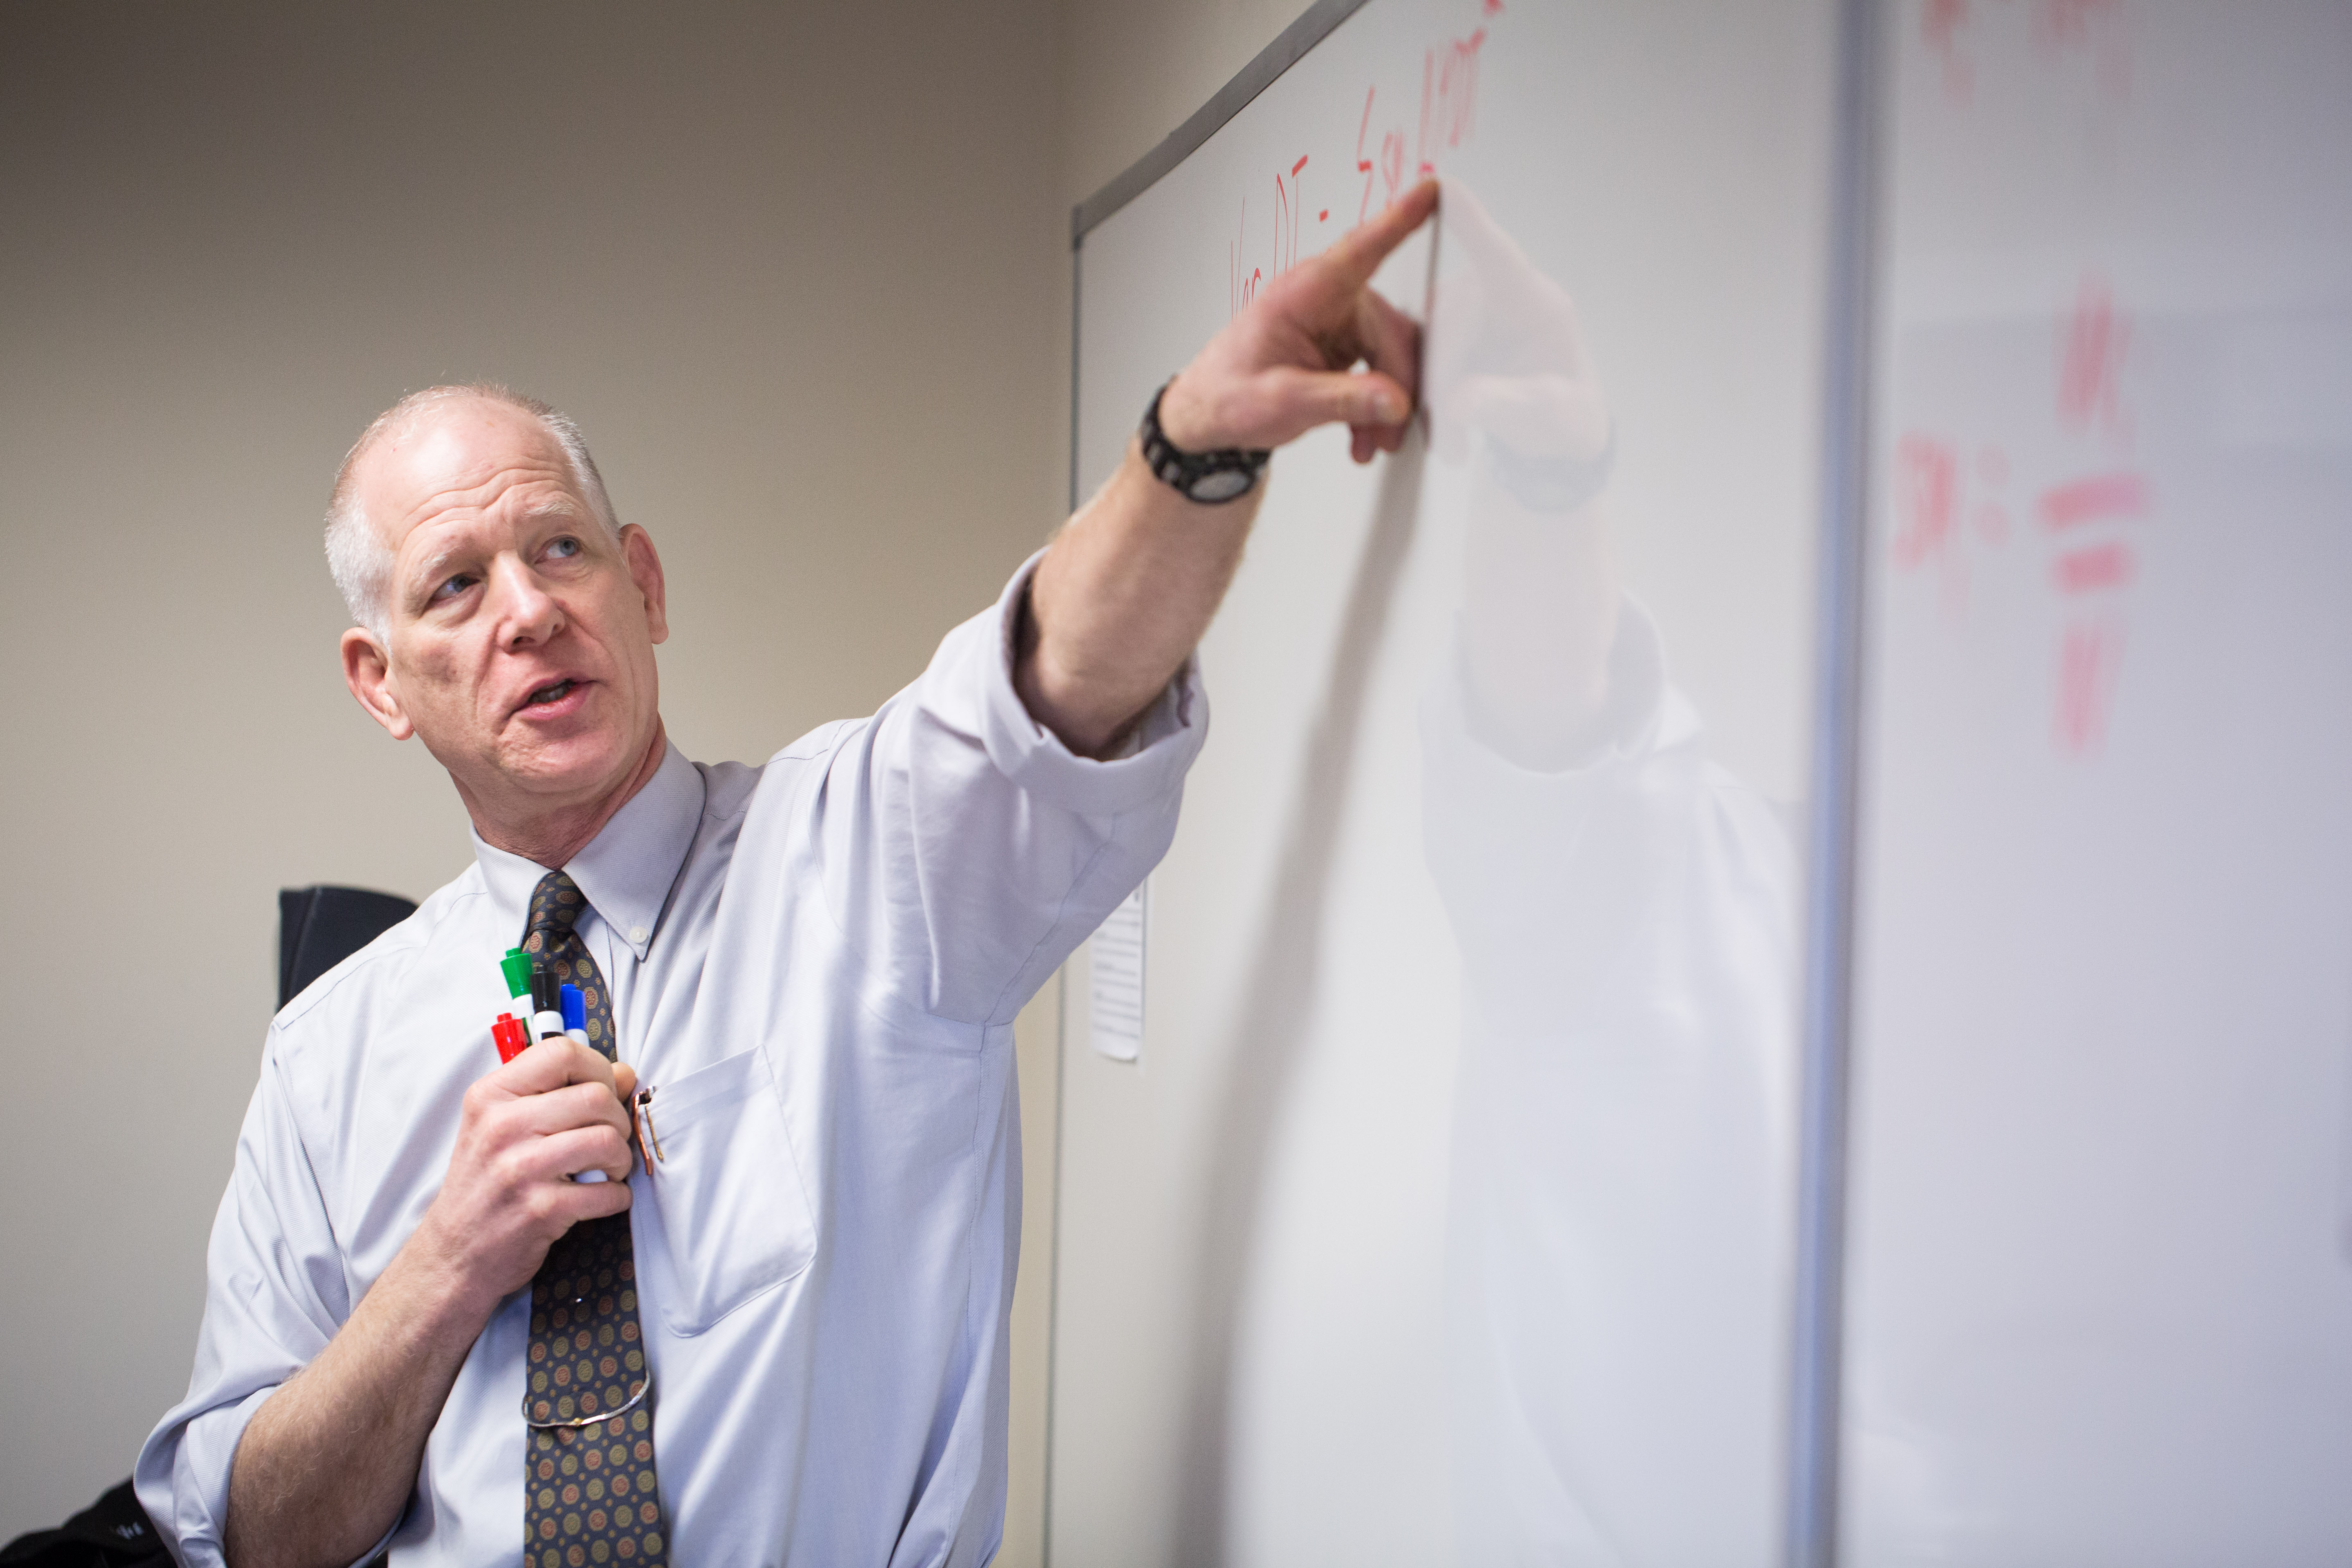 Dr. Mike Kucks teaches Physics at Patrick Henry College, PHC